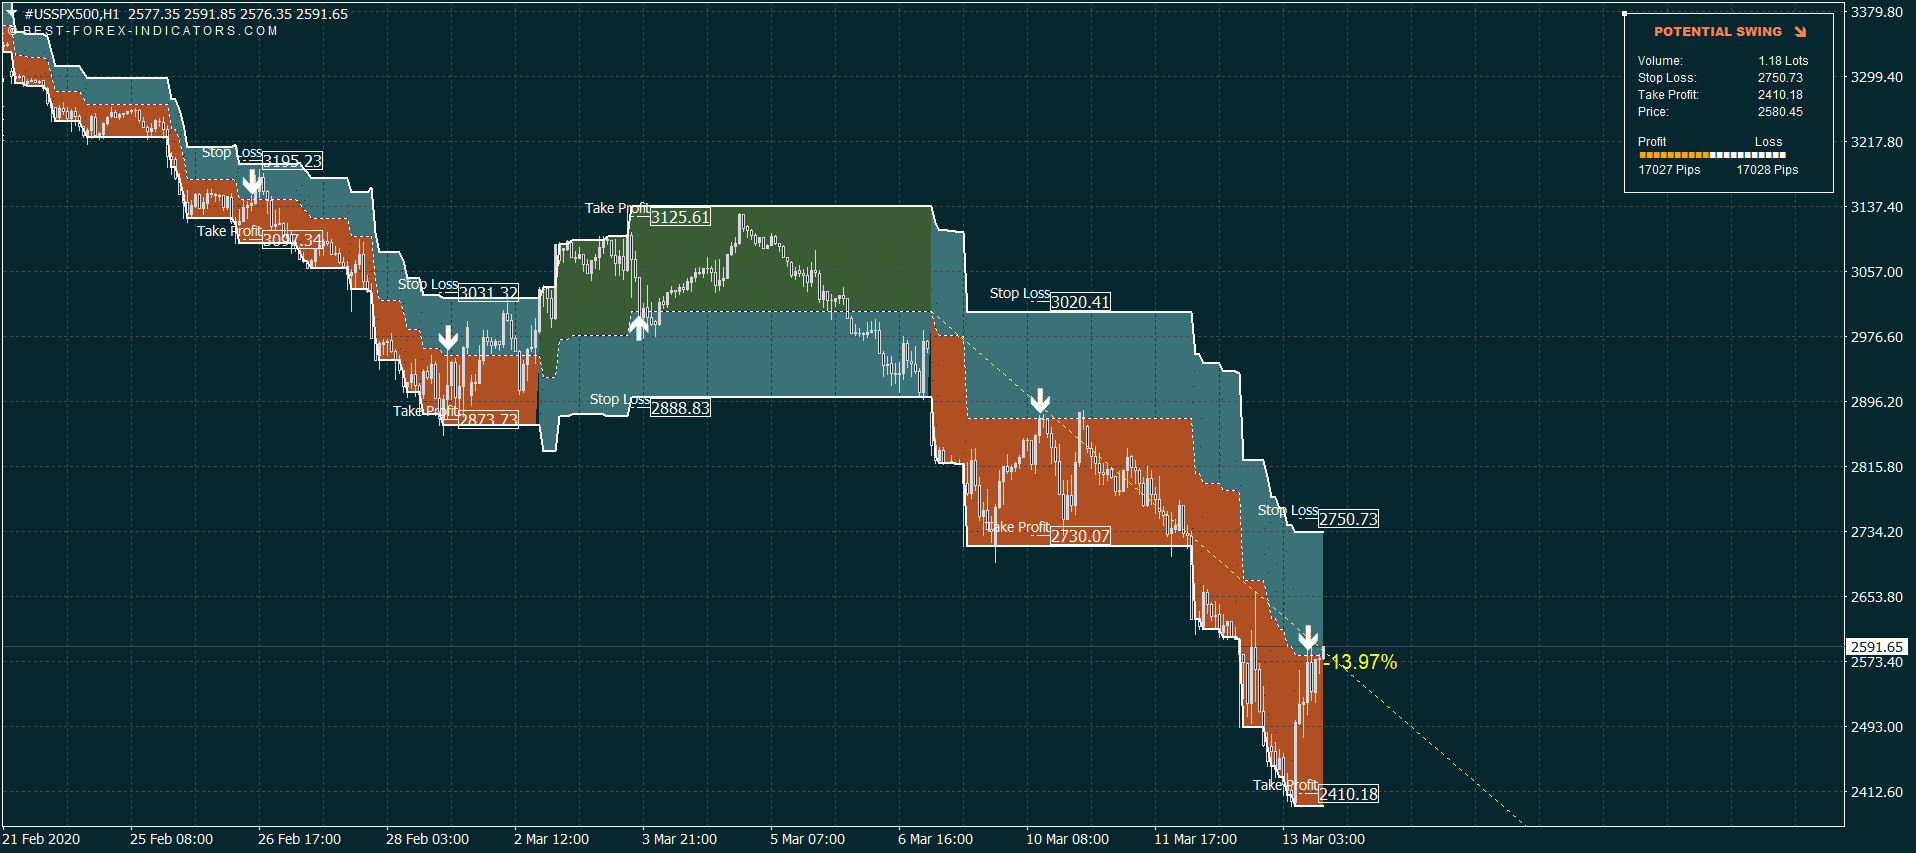 S&P 500 Index Trading System